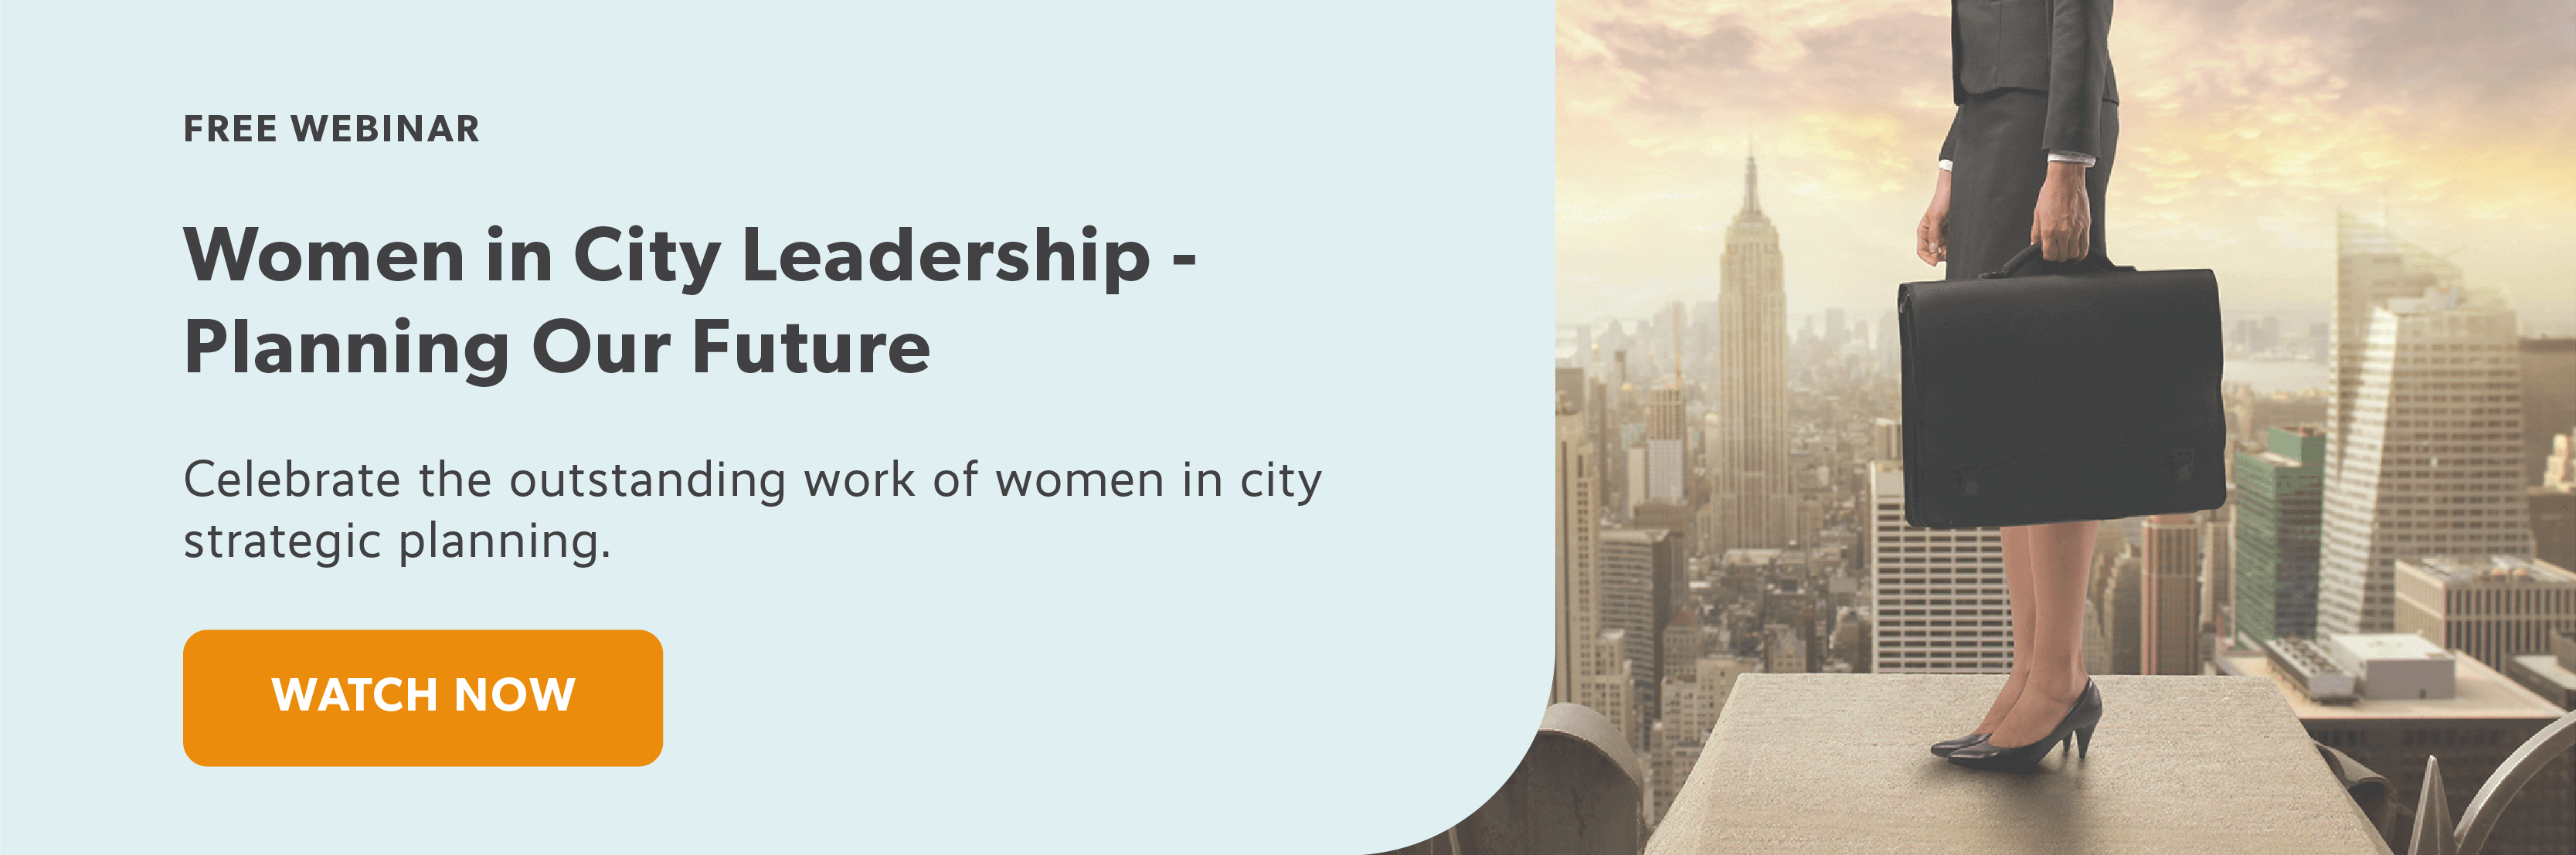 Women in City Leadership - Planning Our Future